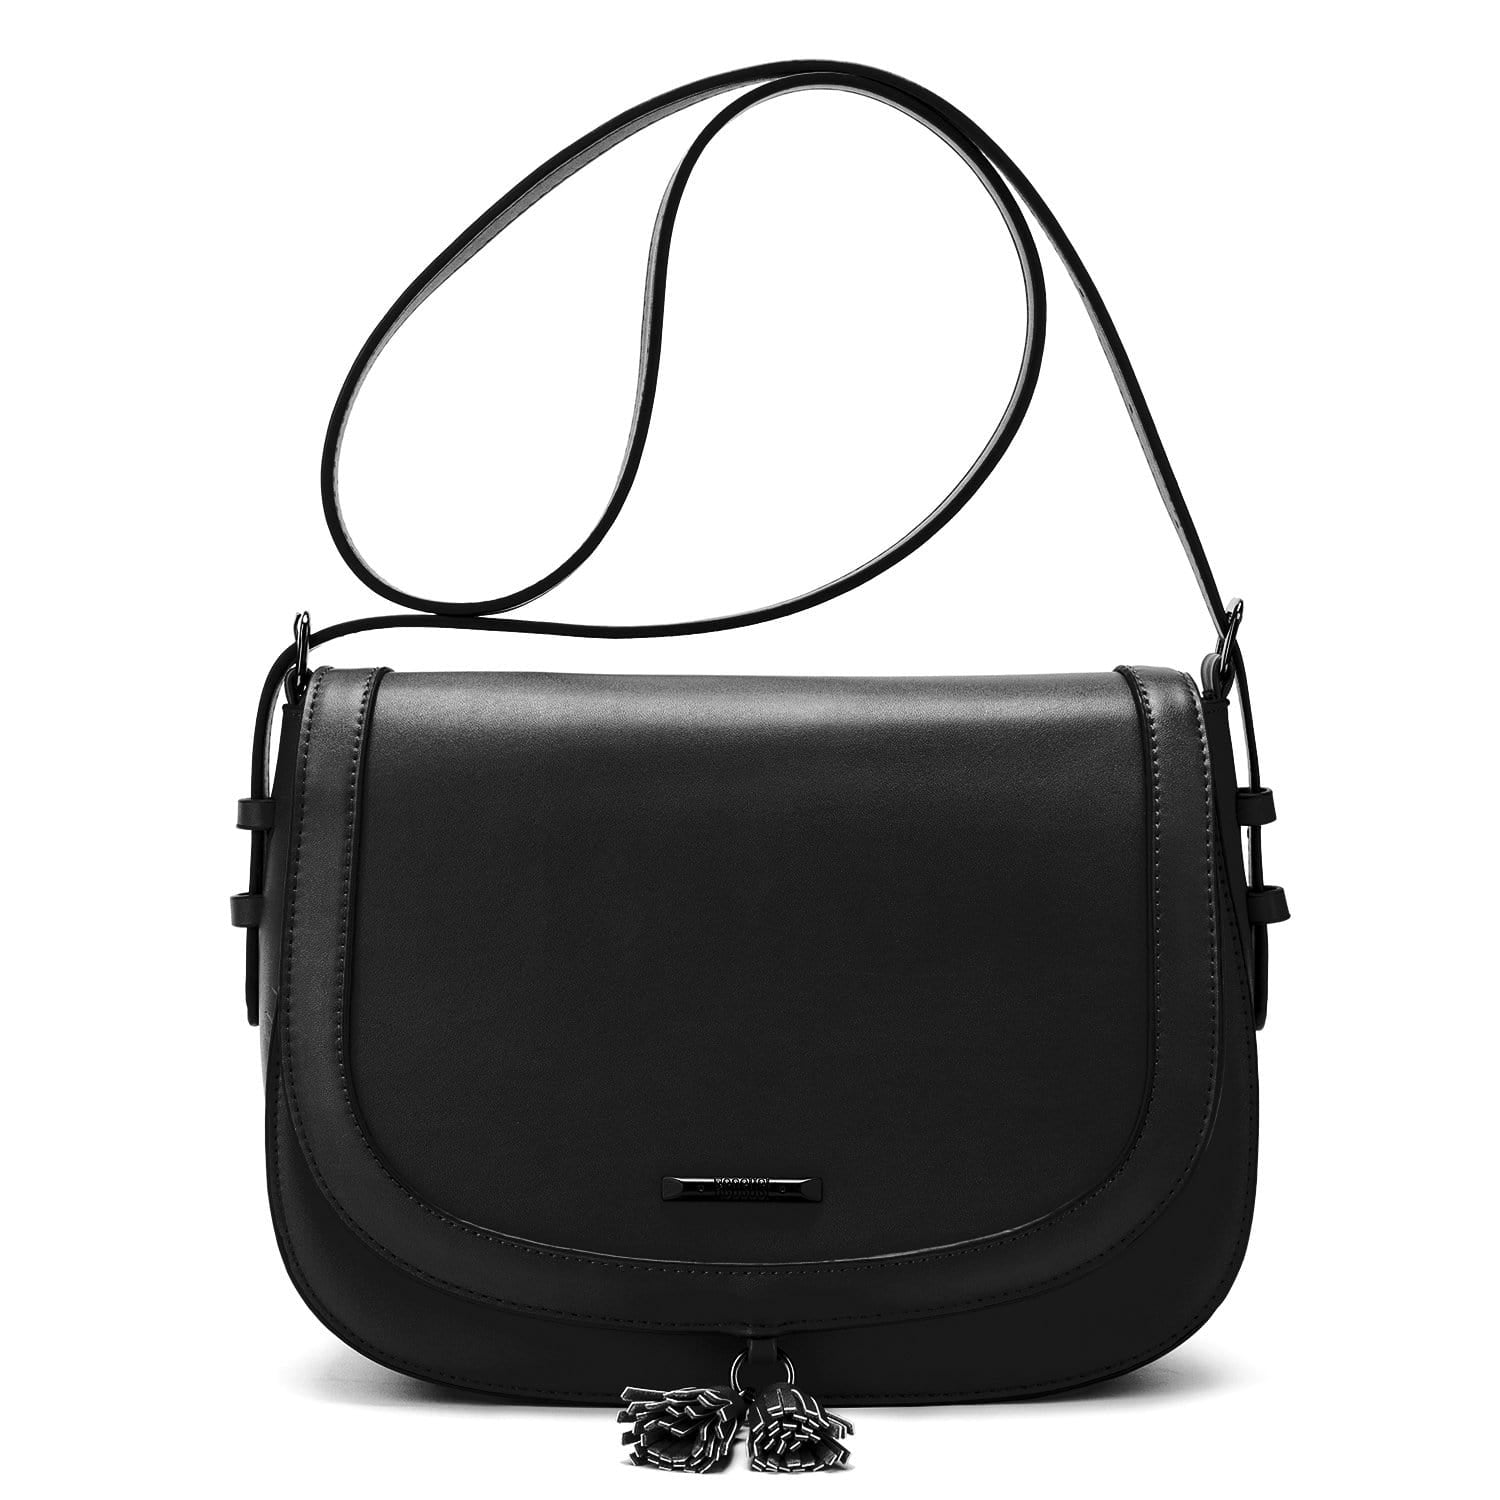 f64706de96 Women s Saddle Bag Purses Crossbody Shoulder Bag with Flap Top   Tassel  Satchel for 9.7 inch